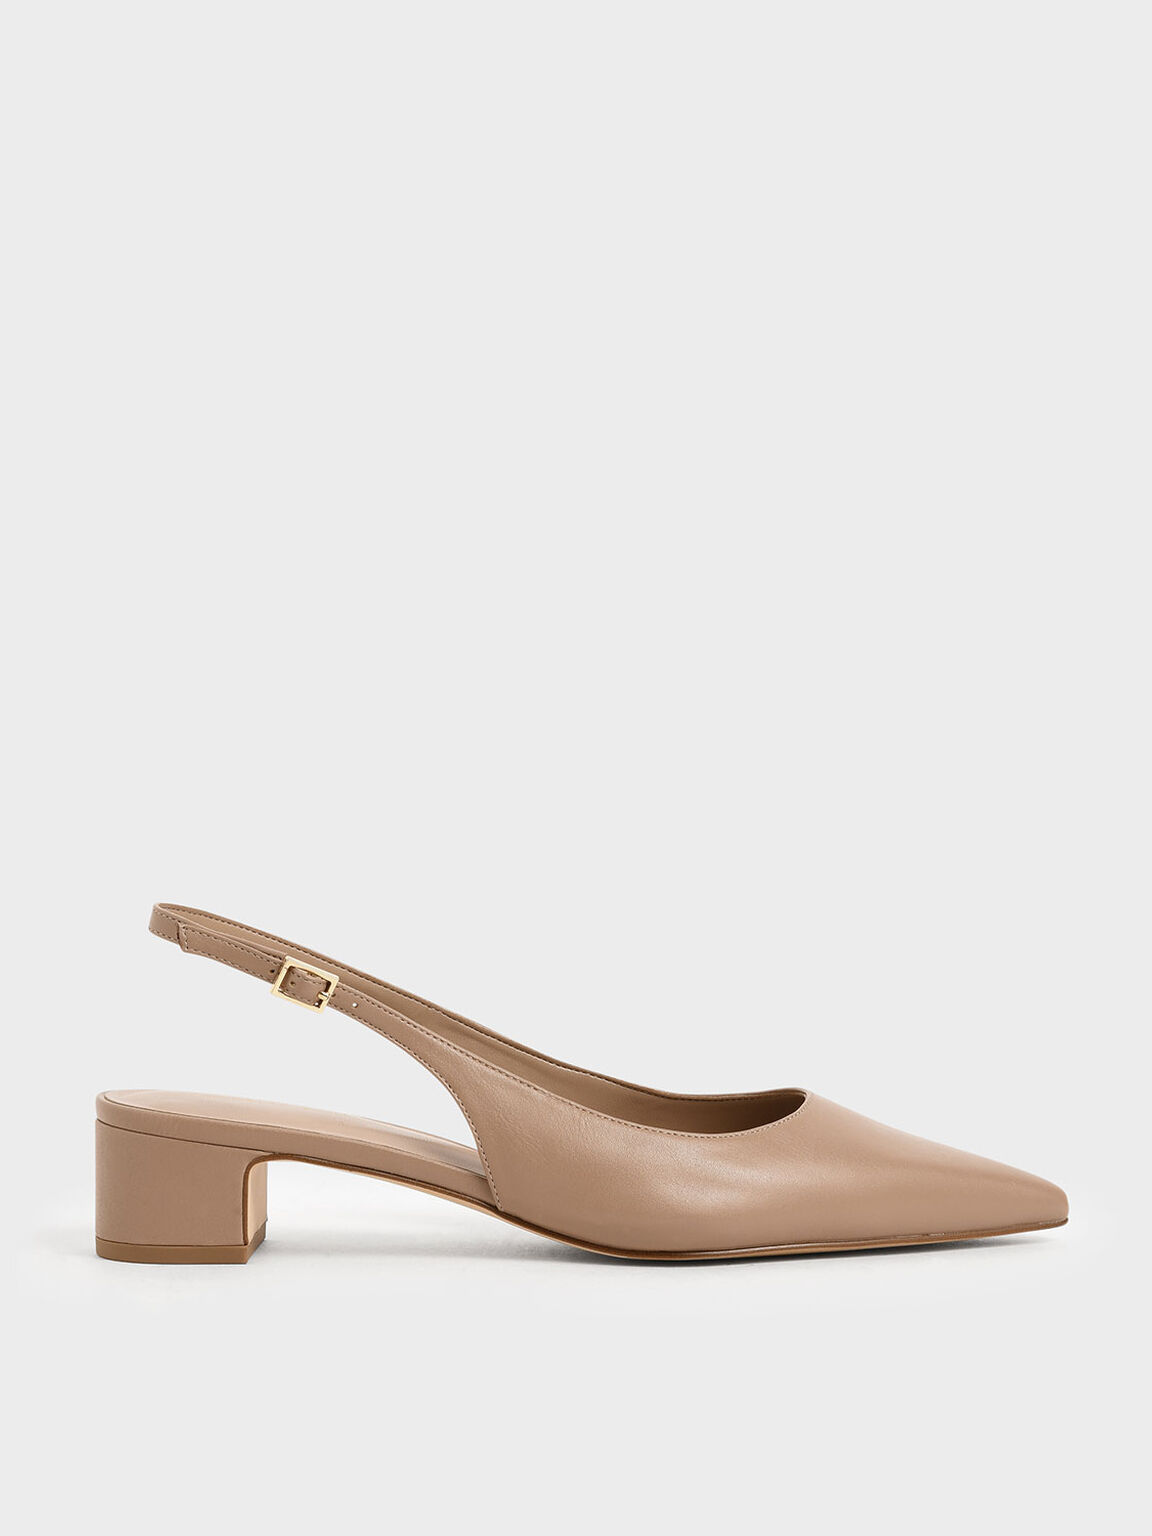 fantastic savings online retailer authentic quality Pointed Toe Slingback Heels | CHARLES & KEITH KR